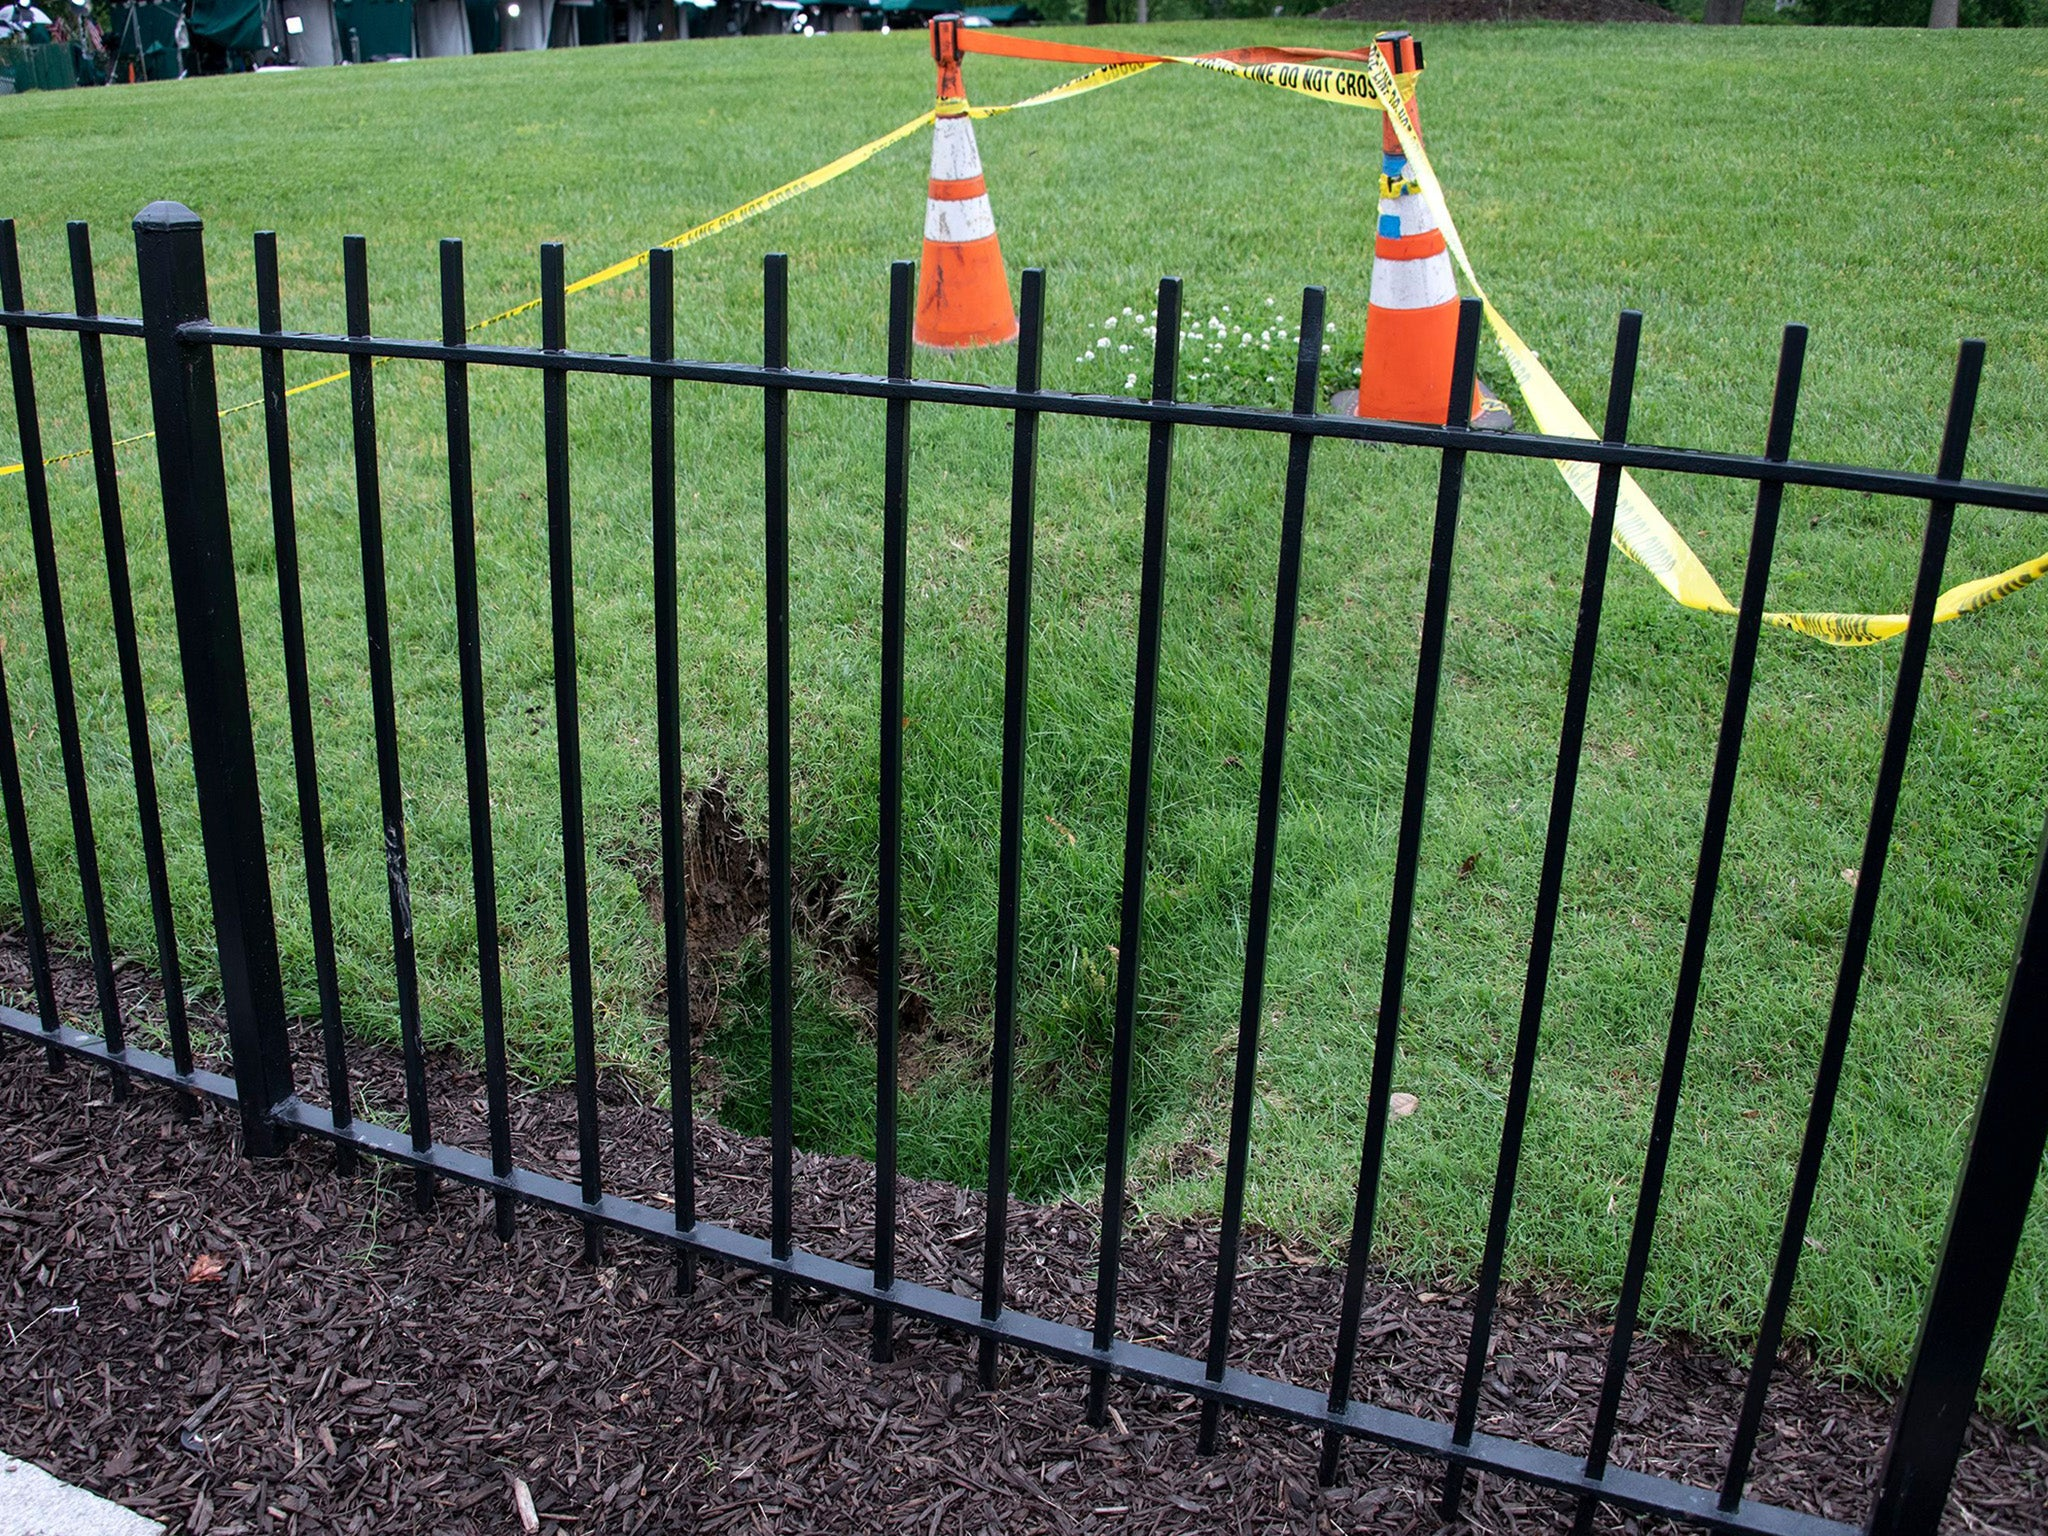 Sinkhole opens up on White House lawn